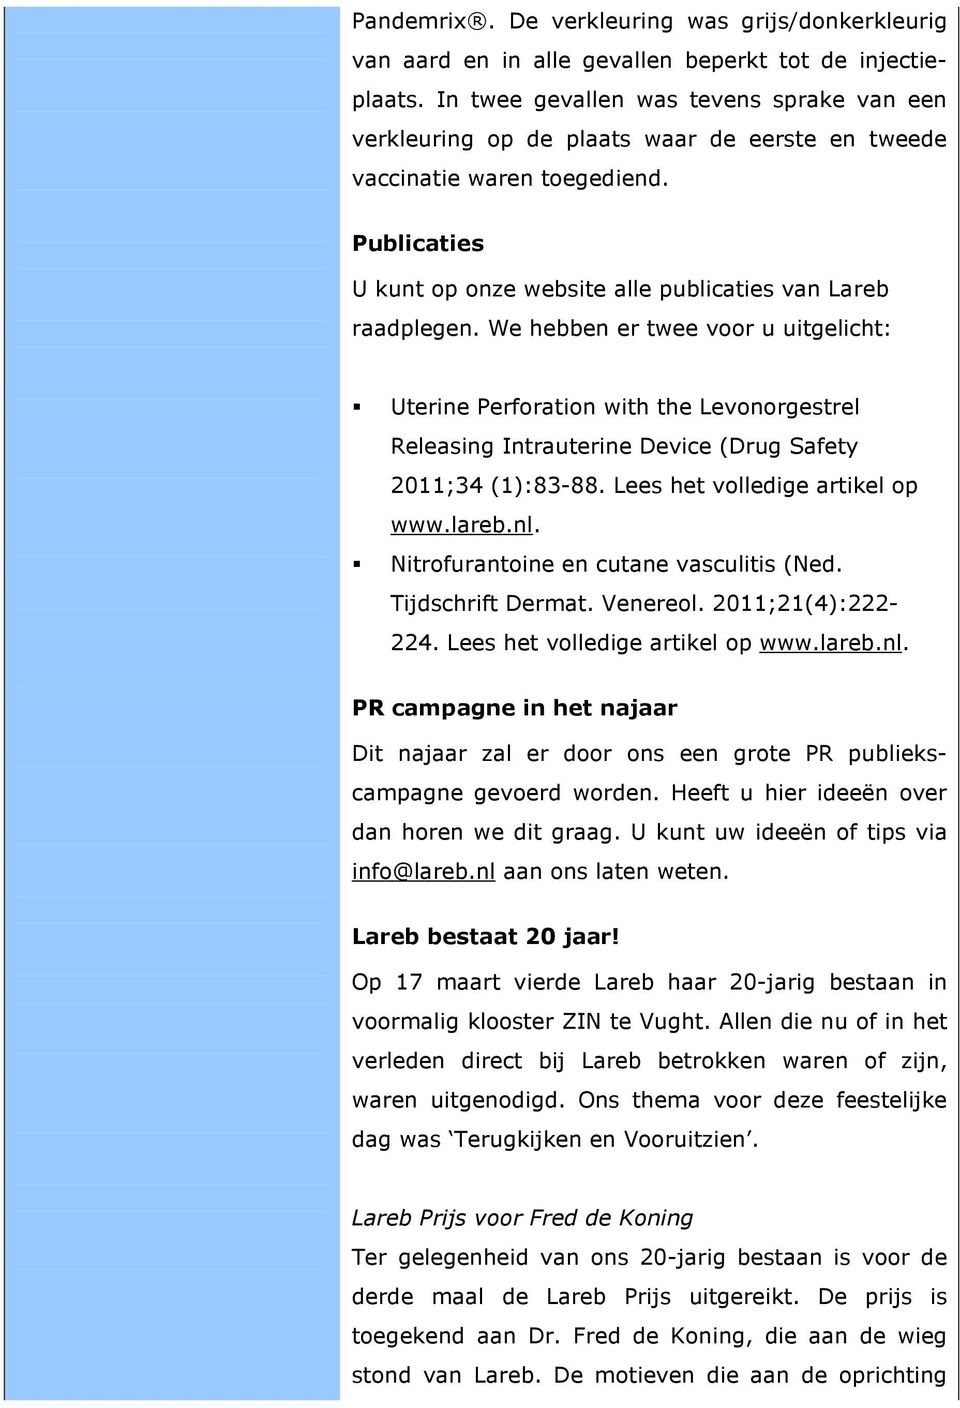 We hebben er twee voor u uitgelicht: Uterine Perforation with the Levonorgestrel Releasing Intrauterine Device (Drug Safety 2011;34 (1):83-88. Lees het volledige artikel op www.lareb.nl.